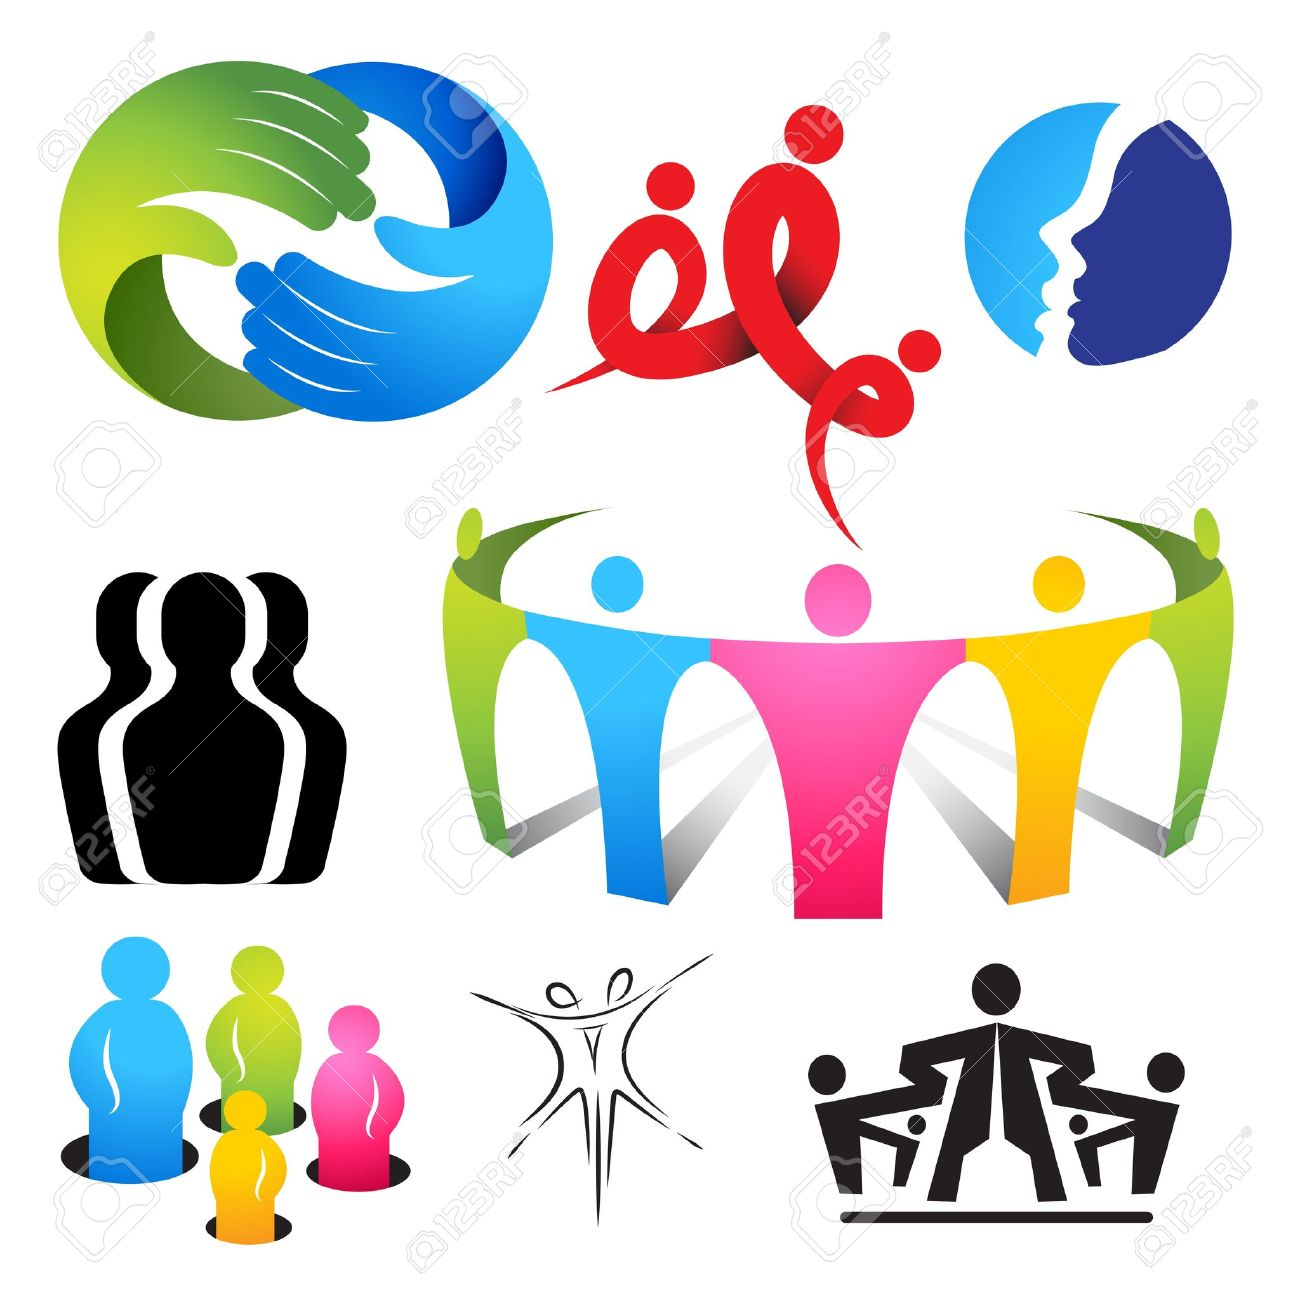 A collection of connecting people icons and symbols Stock Vector - 14968601